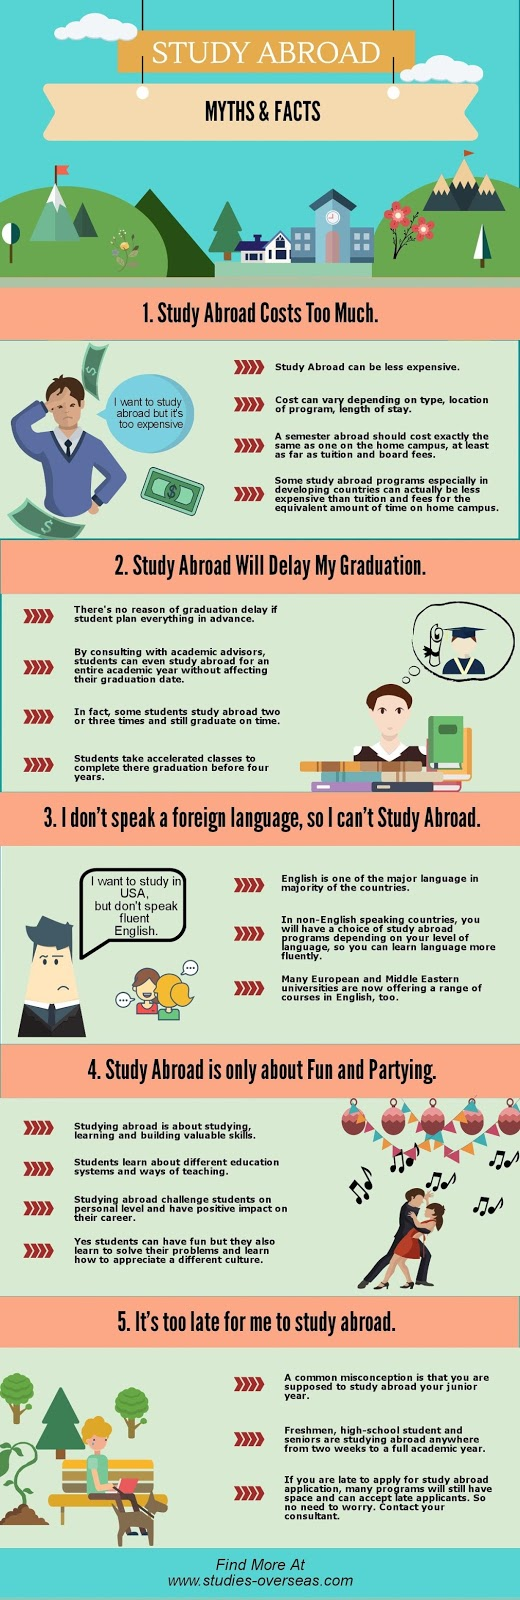 Study Abroad Myths and Facts